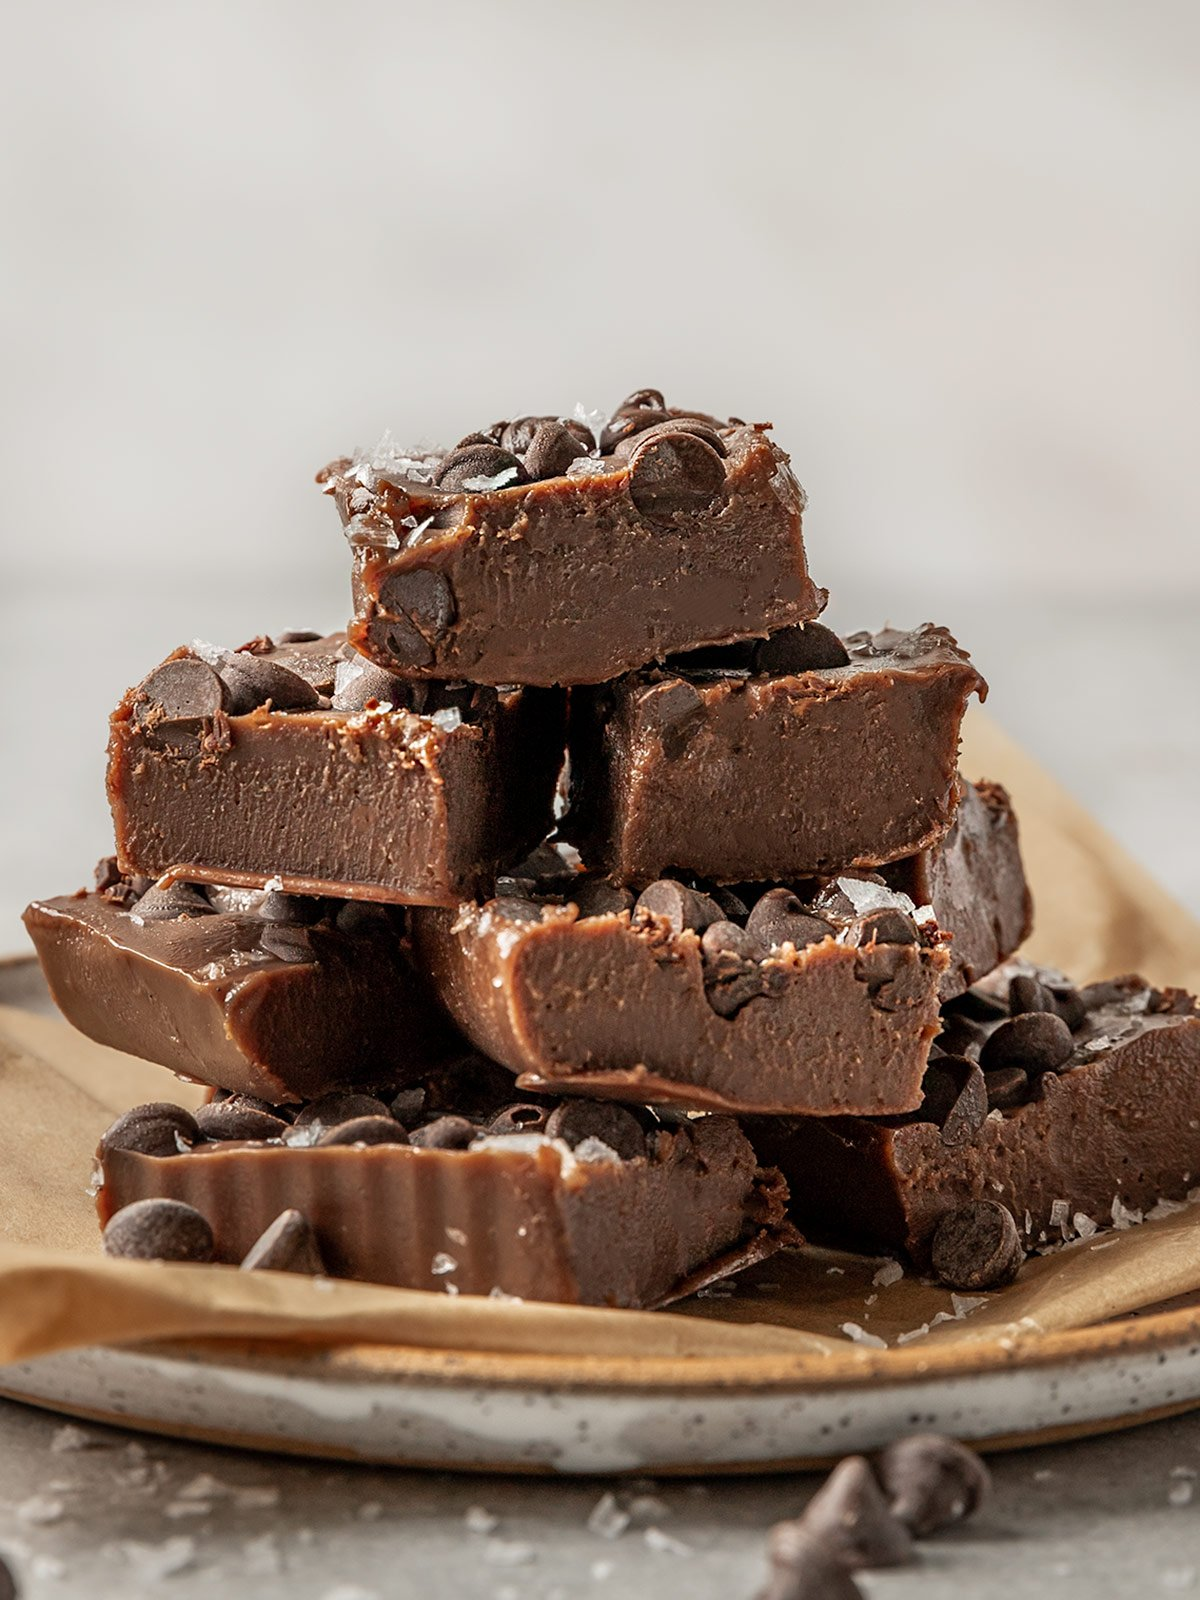 stack of chocolate fudge with chocolate chips and flaky salt on a plate